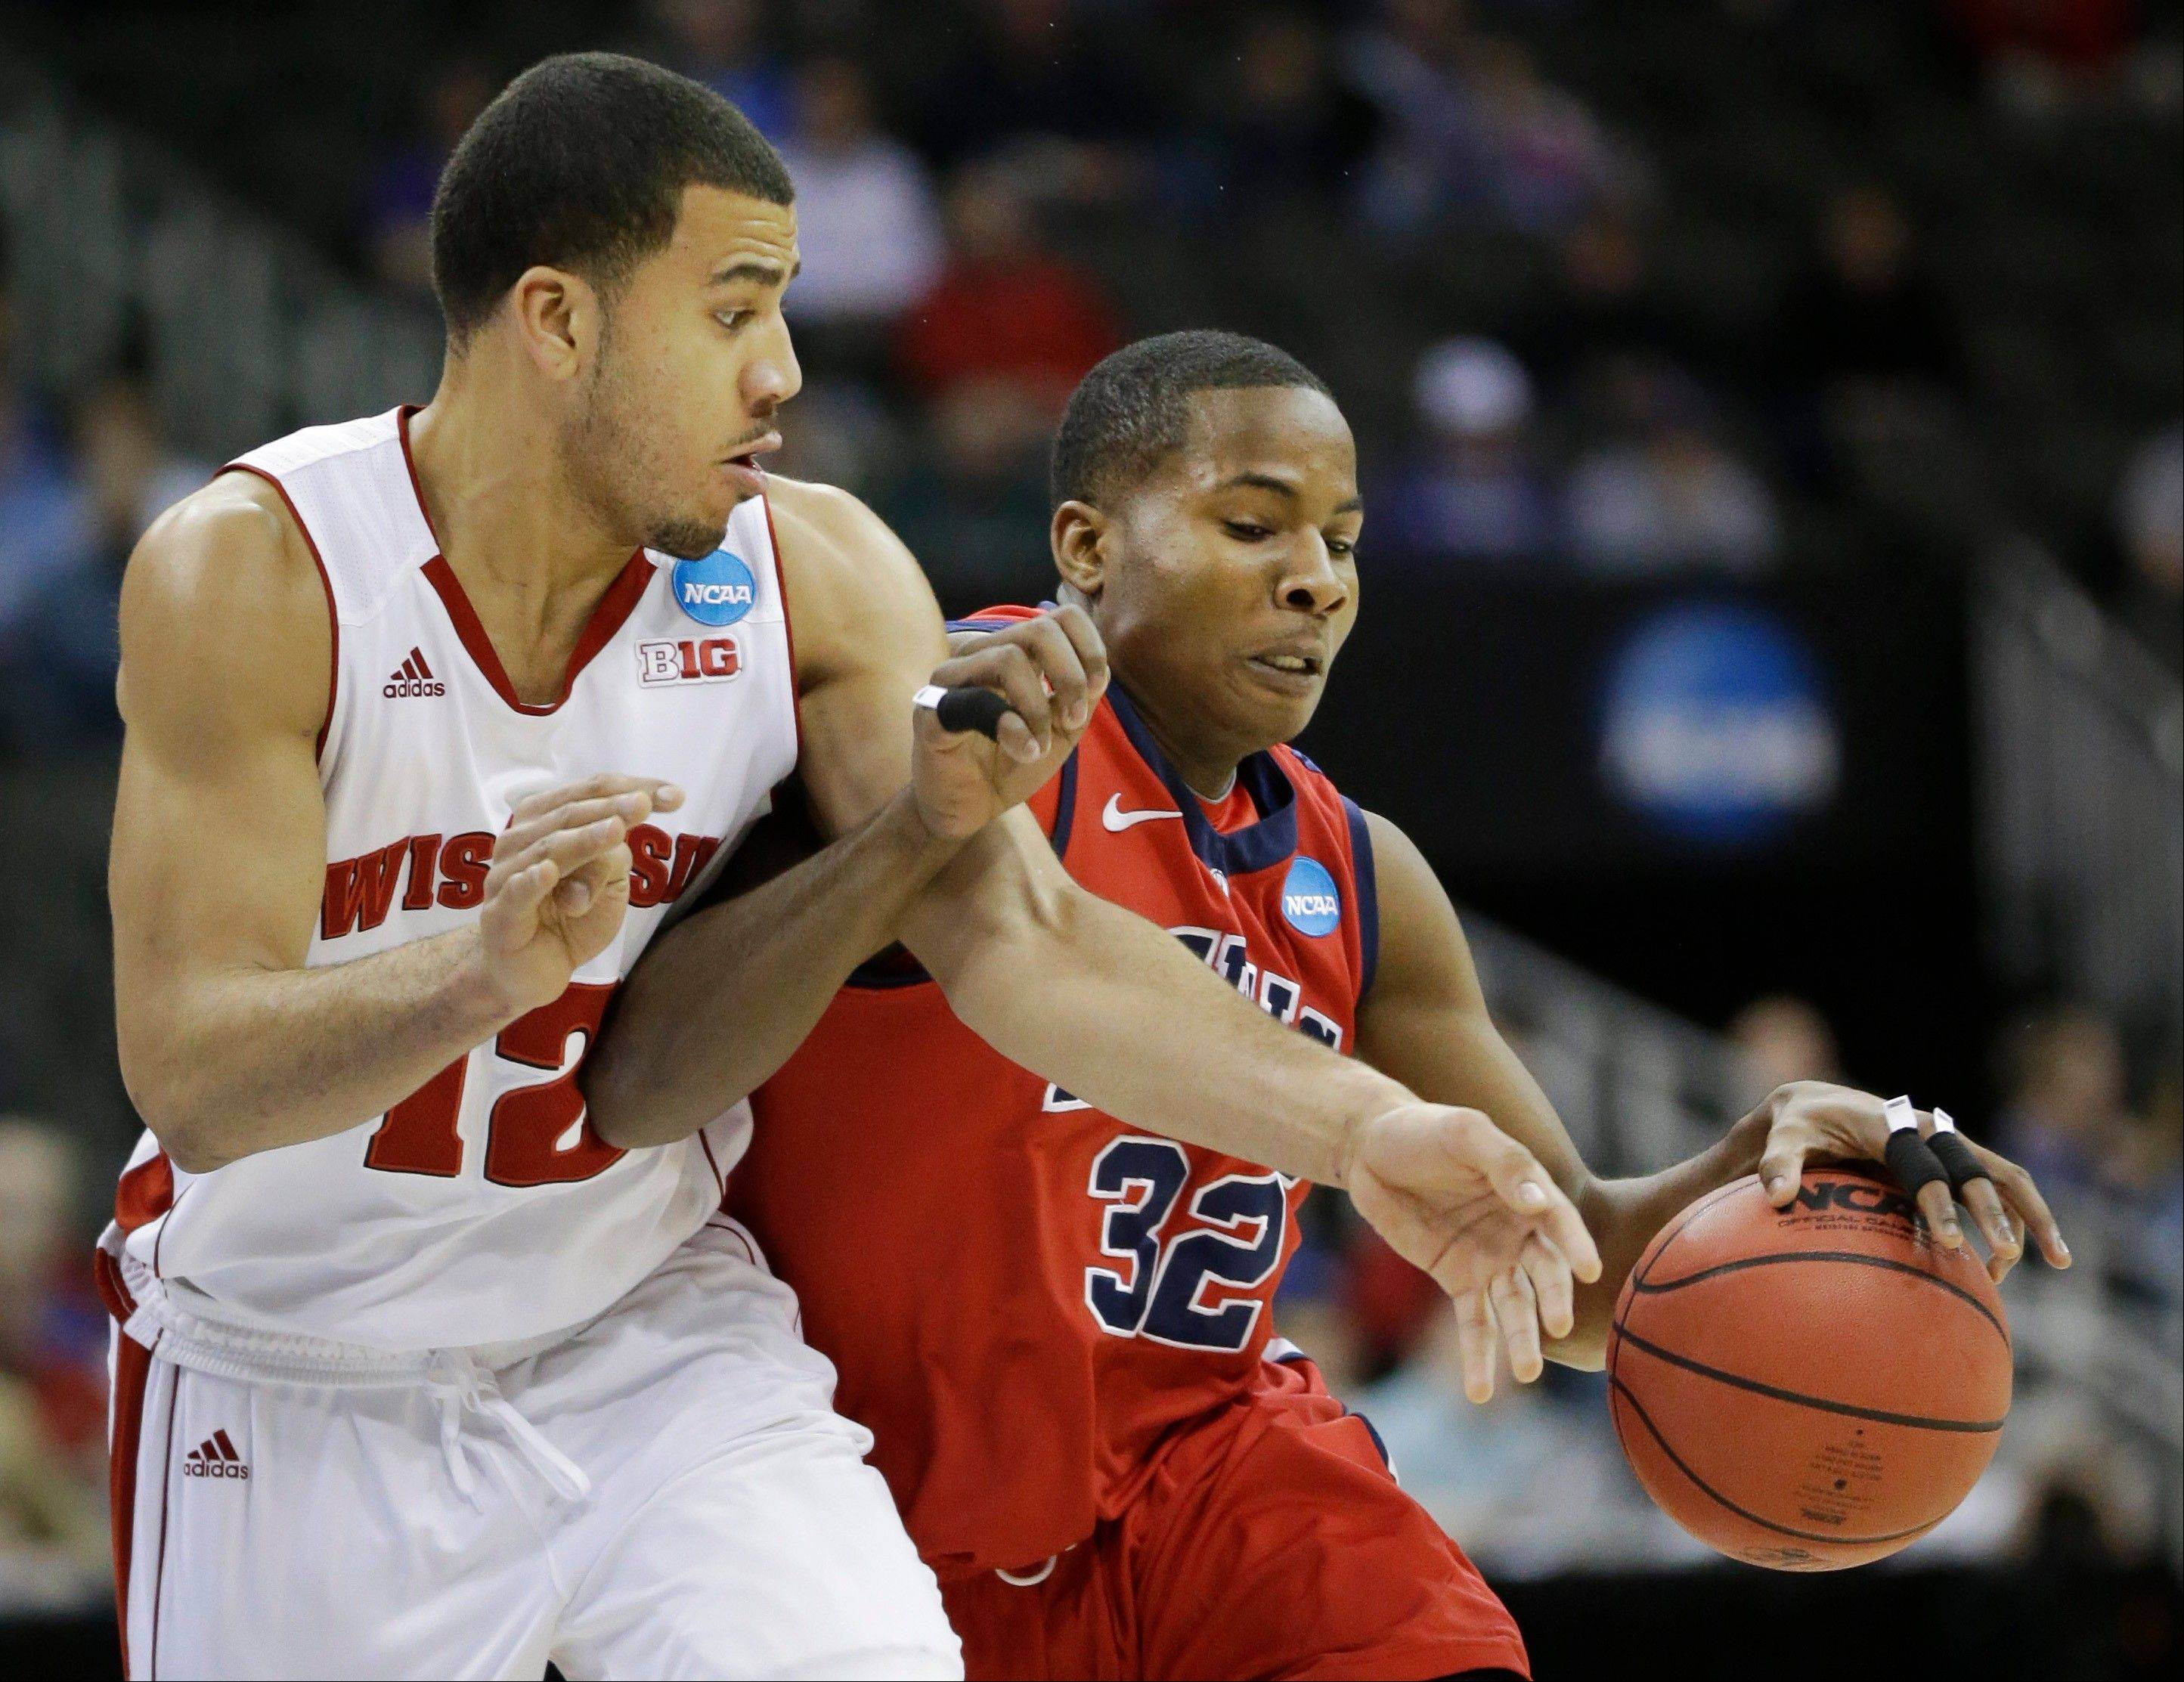 Mississippi guard Jarvis Summers (32) is fouled by Wisconsin guard Traevon Jackson (12) Friday during the first half of a second round game in the NCAA tournament at the Sprint Center in Kansas City, Mo.